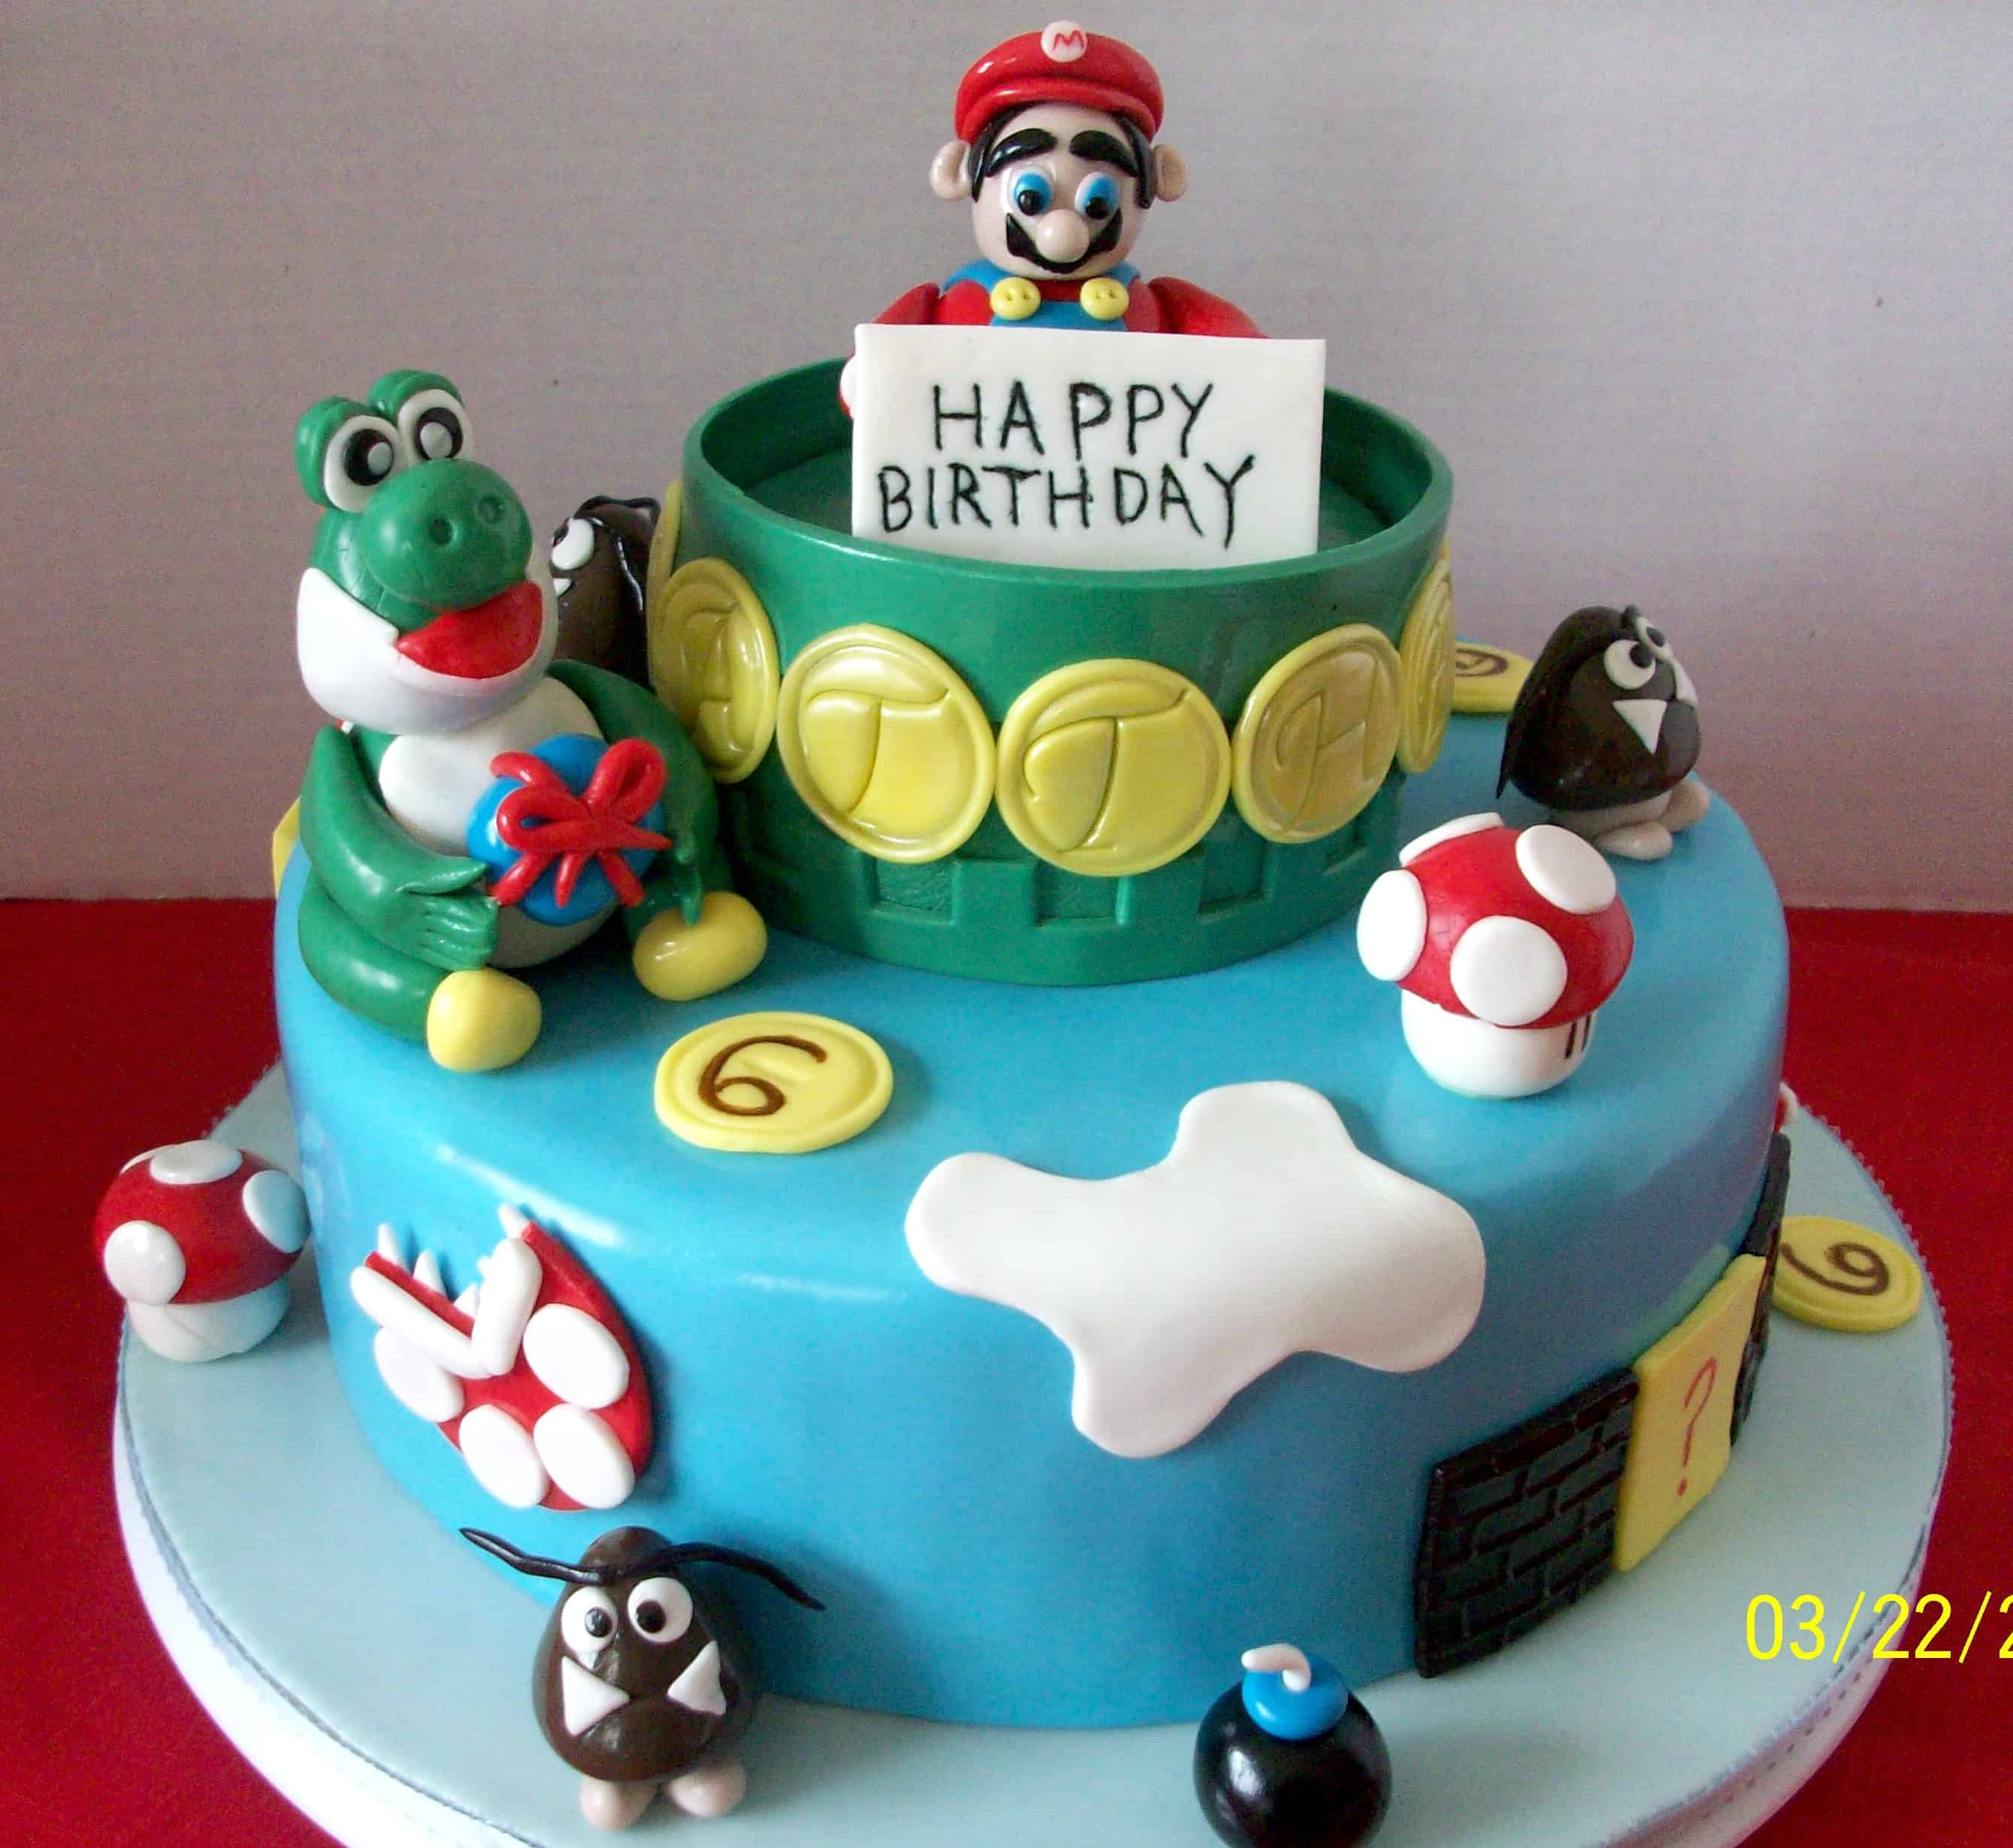 Easy to Follow Instructions for Making Some of Your Favorite Mario Cakes